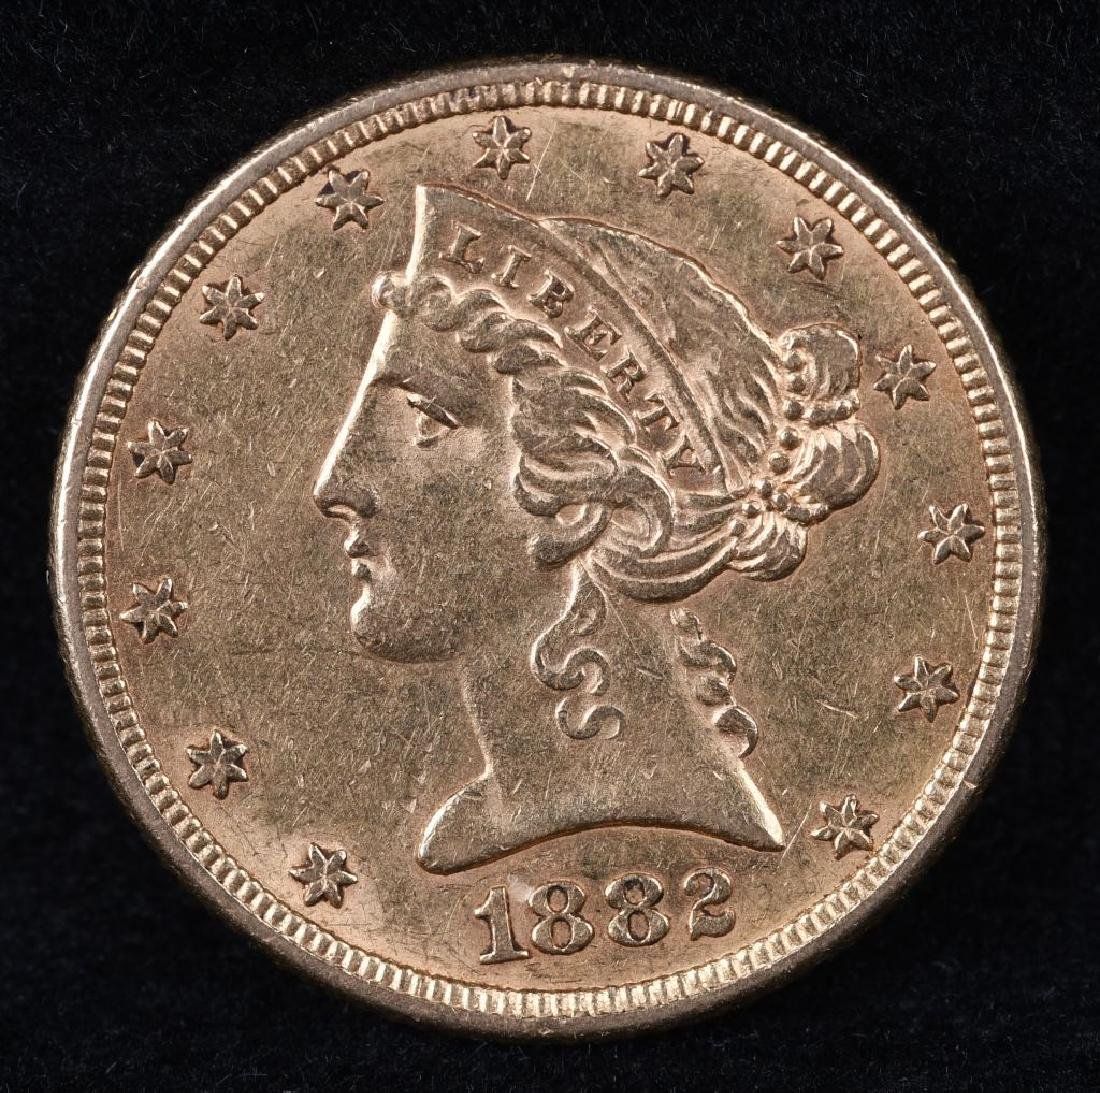 1882 $5 US GOLD LIBERTY